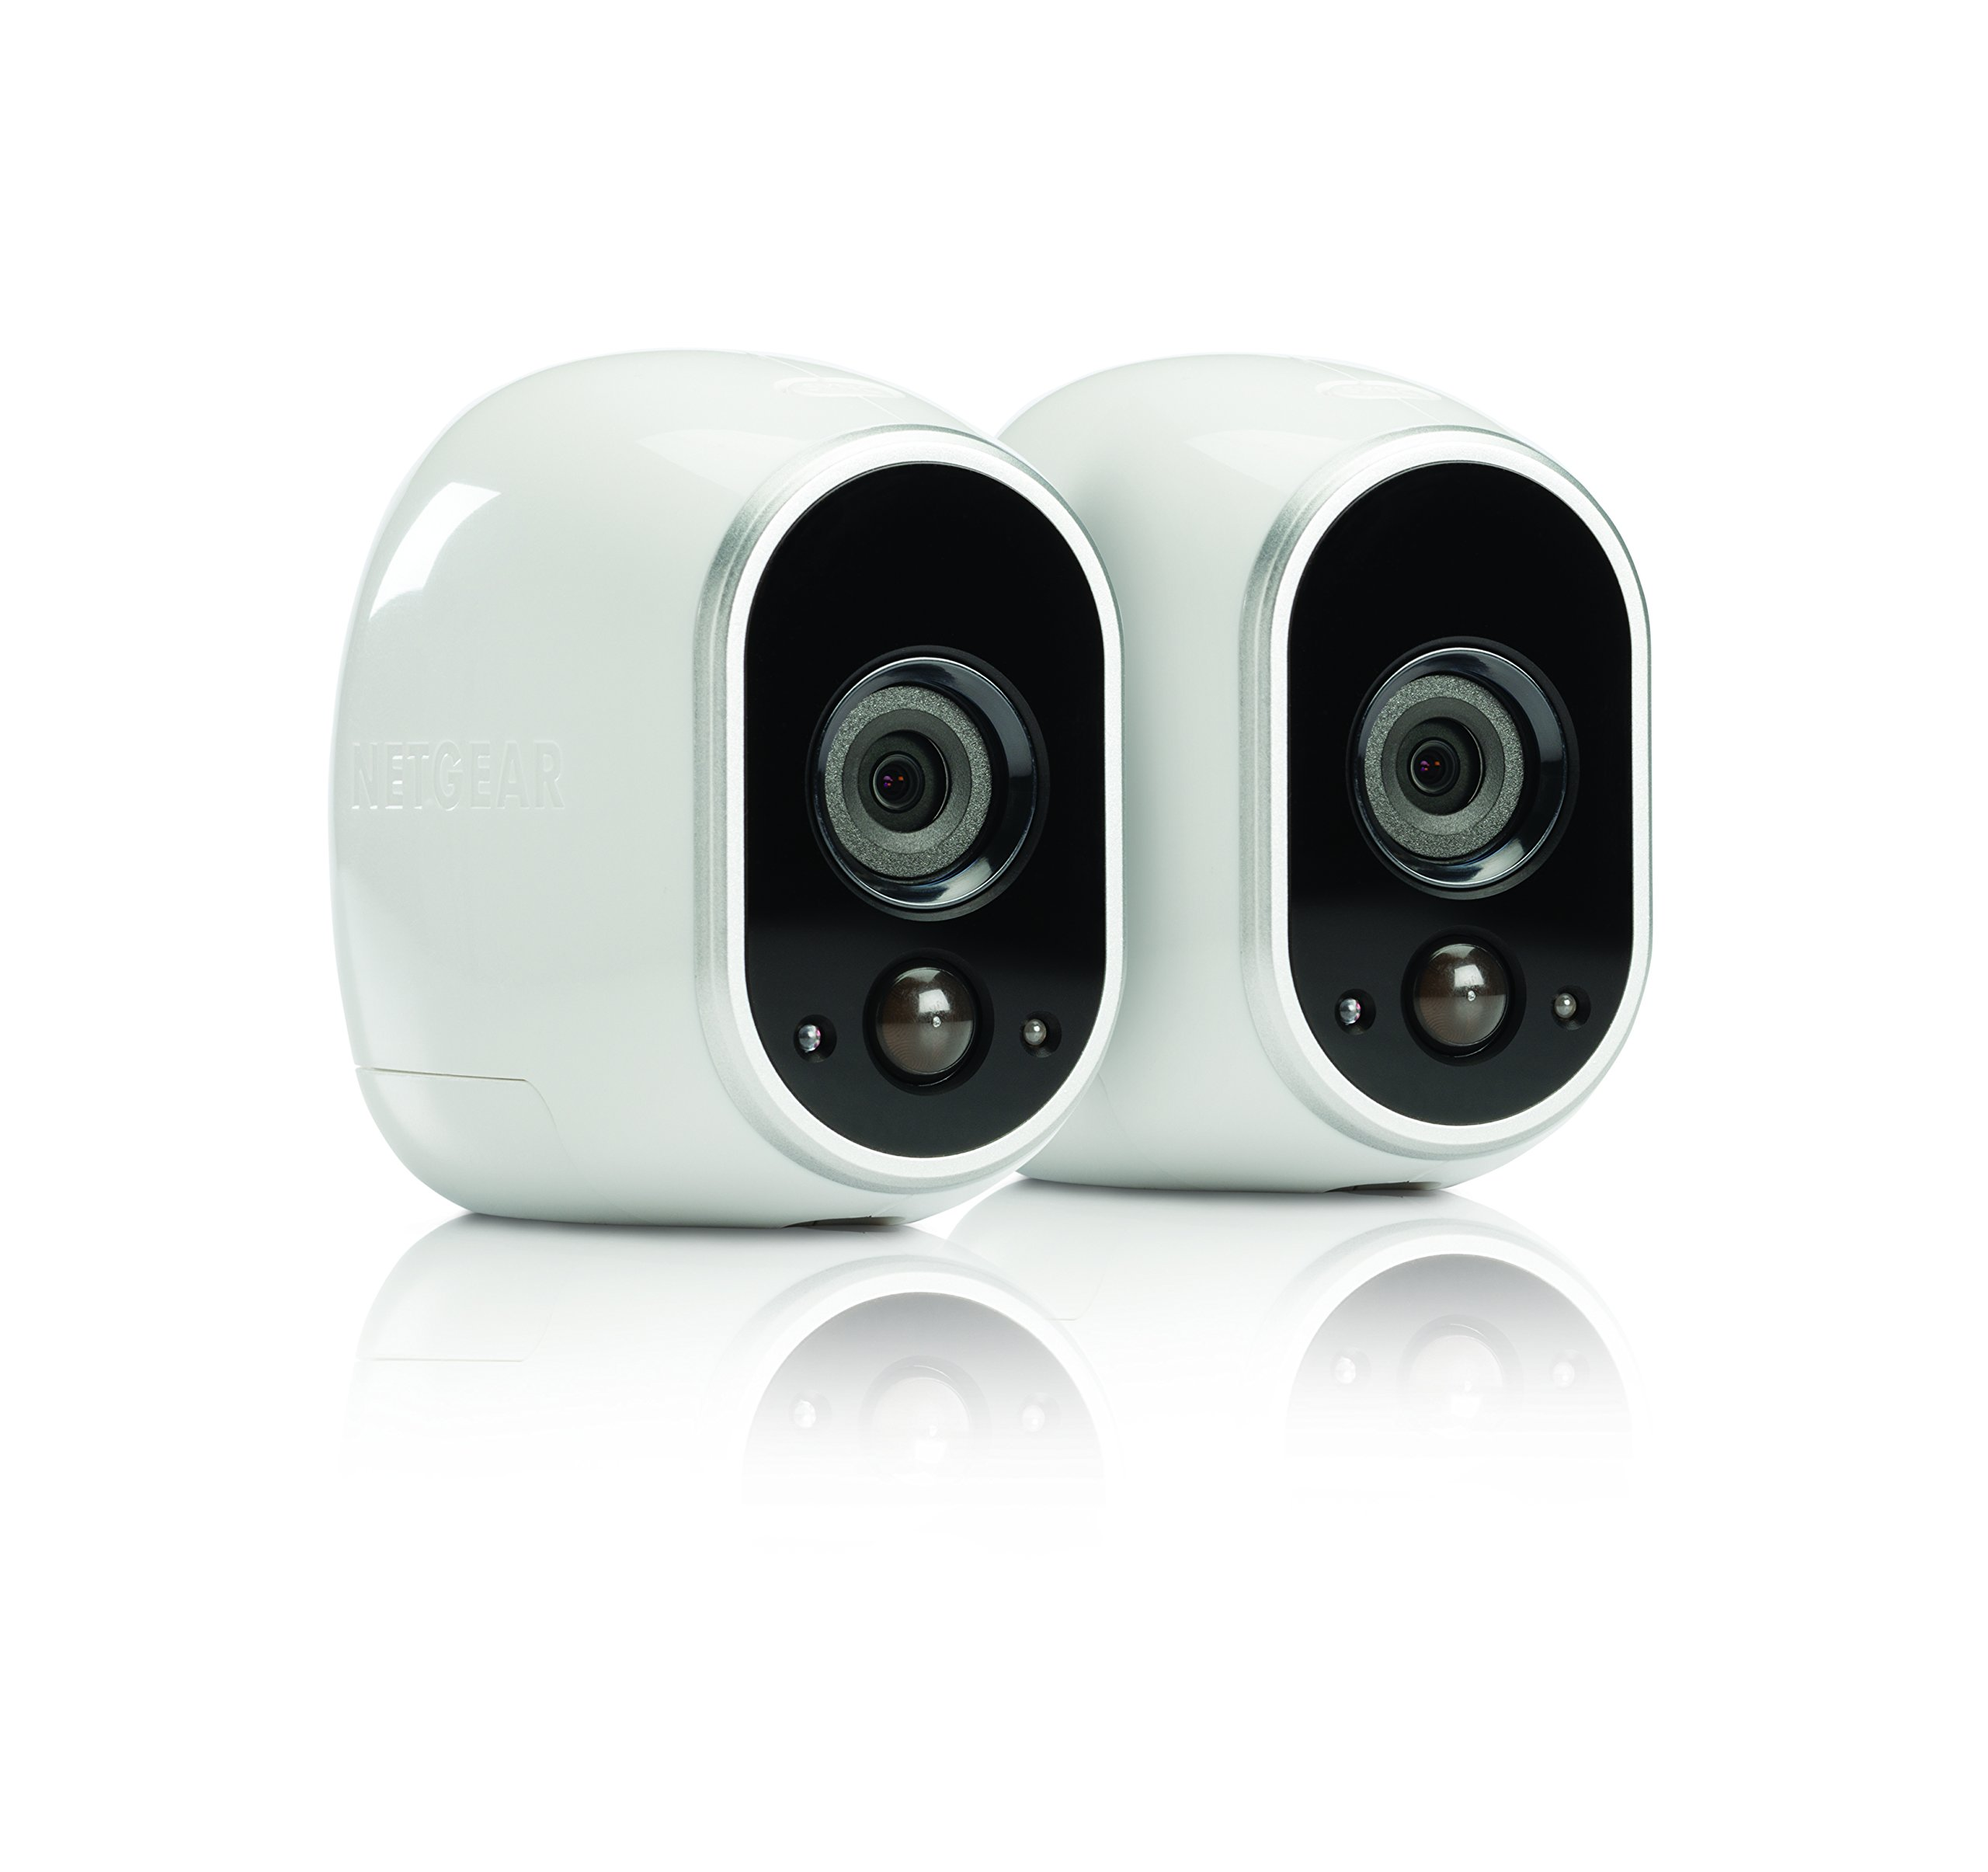 Arlo Security System by NETGEAR - 2 Wire-Free HD Cameras, Indoor/Outdoor